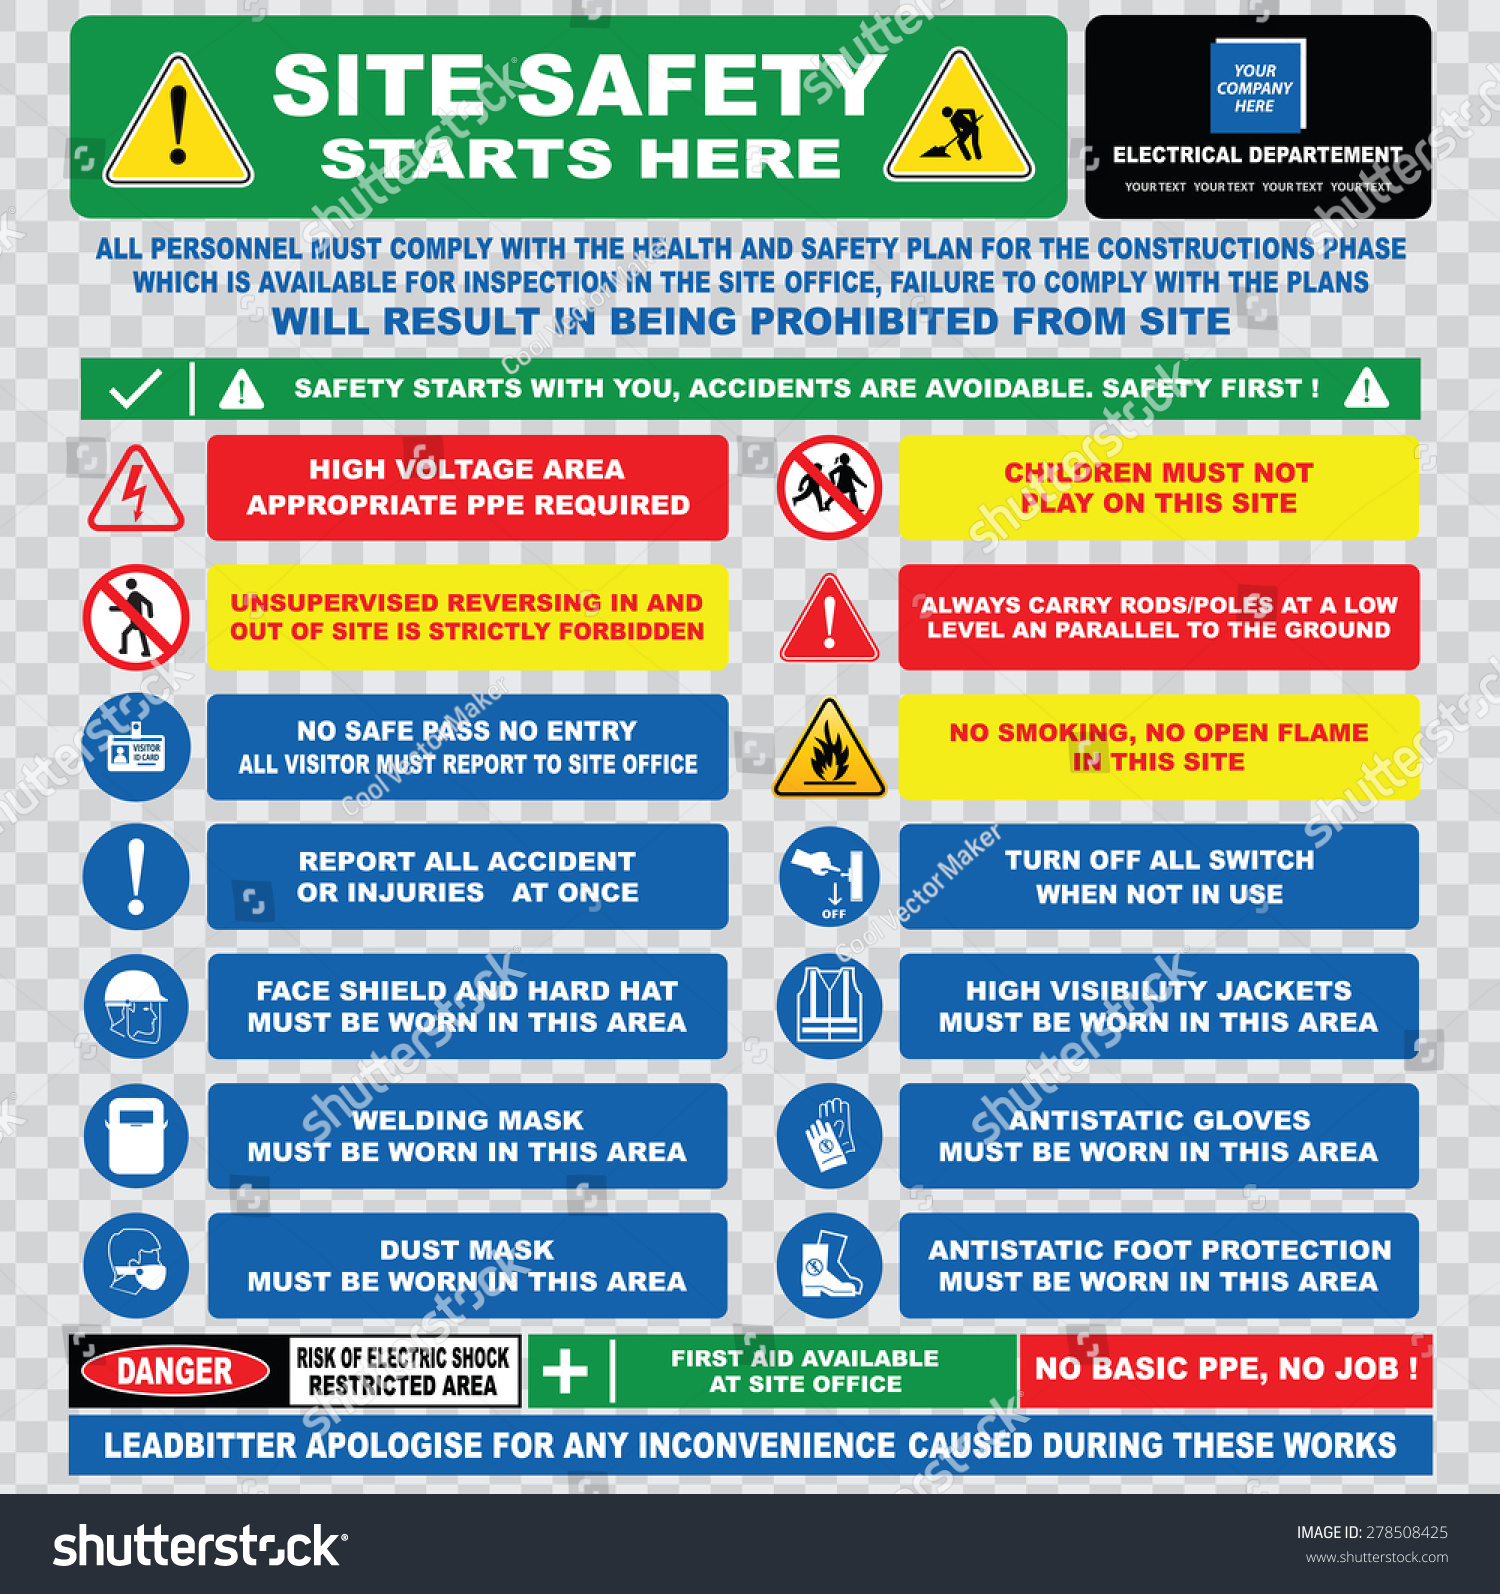 Site Safety Starts Here Site Safety Stock Vector